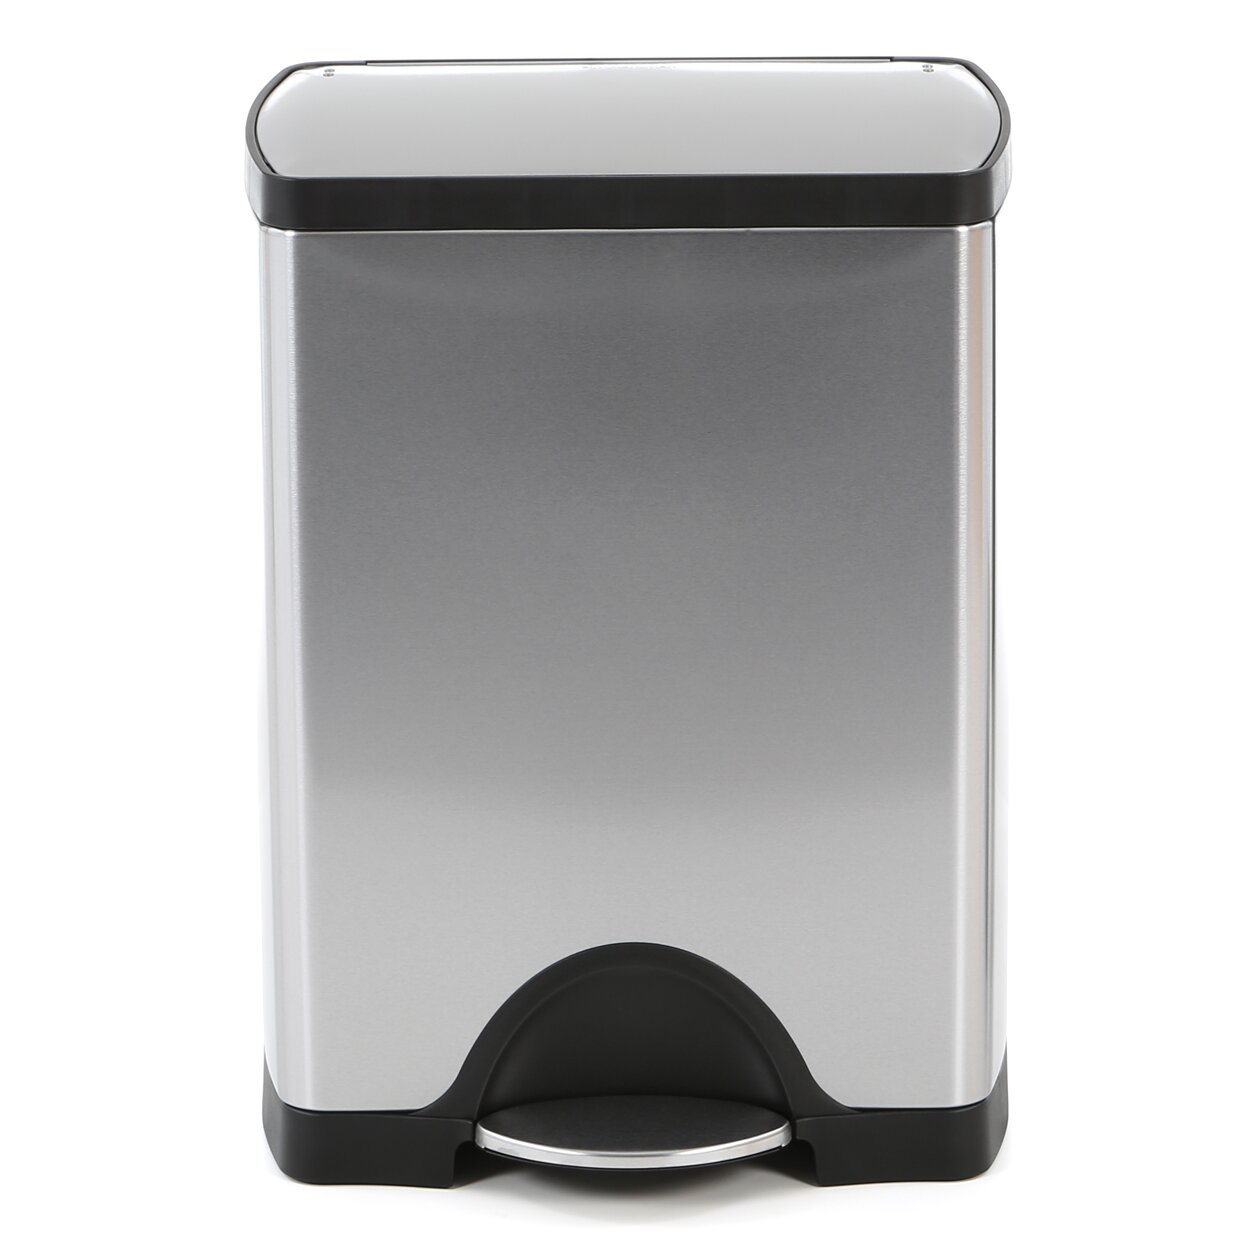 Simplehuman 8 gallon step on stainless steel trash can reviews - Rectangular garbage cans ...